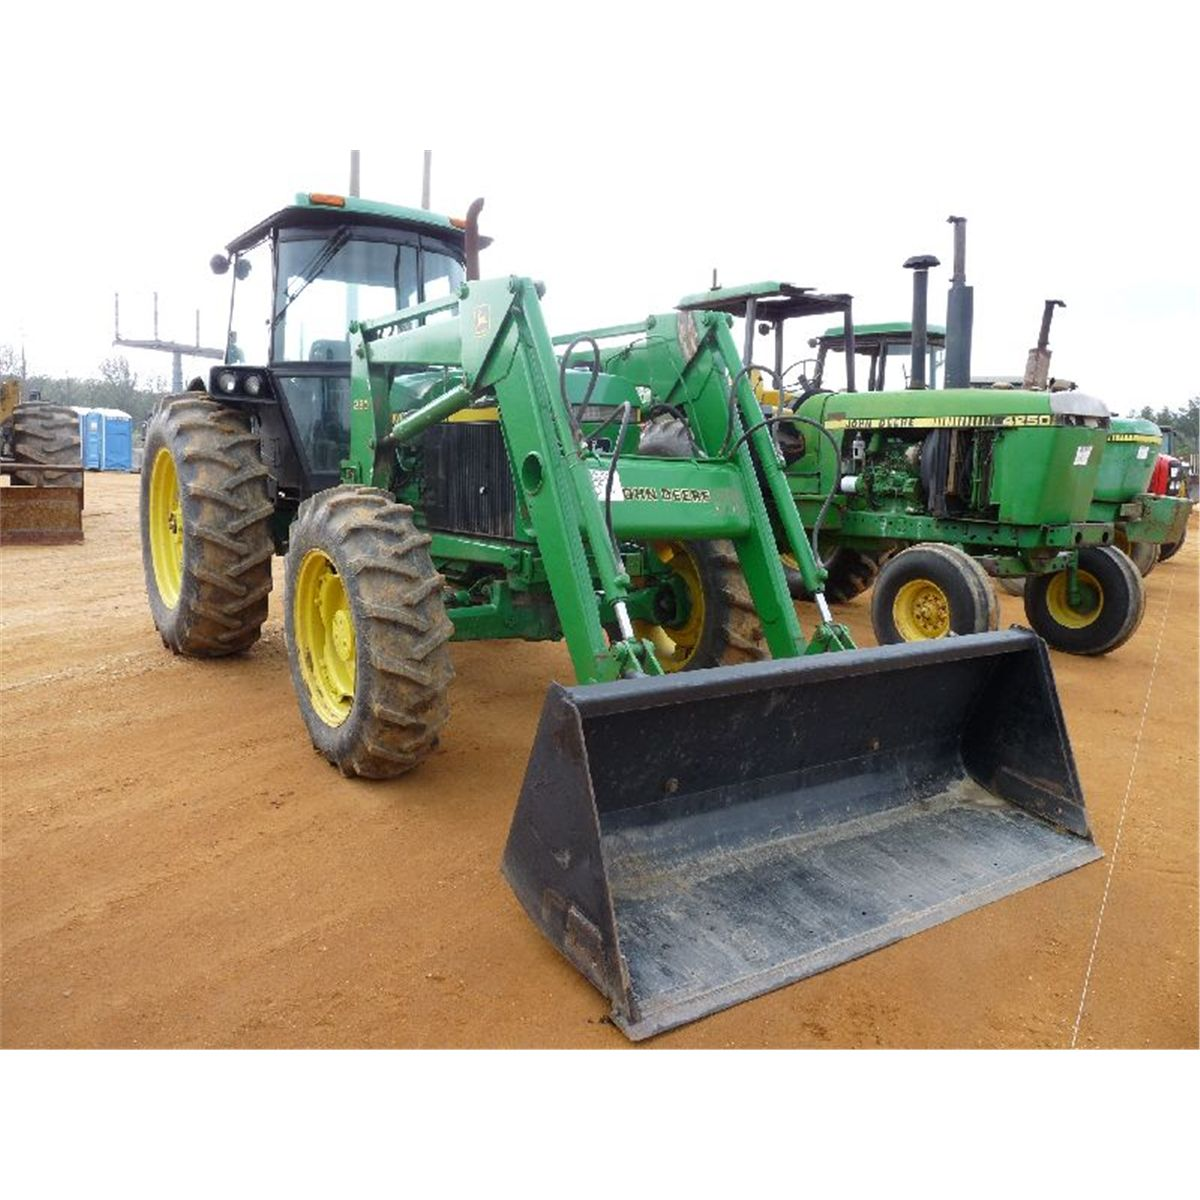 john deere 2955 4x4 farm tractor j m wood auction company inc. Black Bedroom Furniture Sets. Home Design Ideas